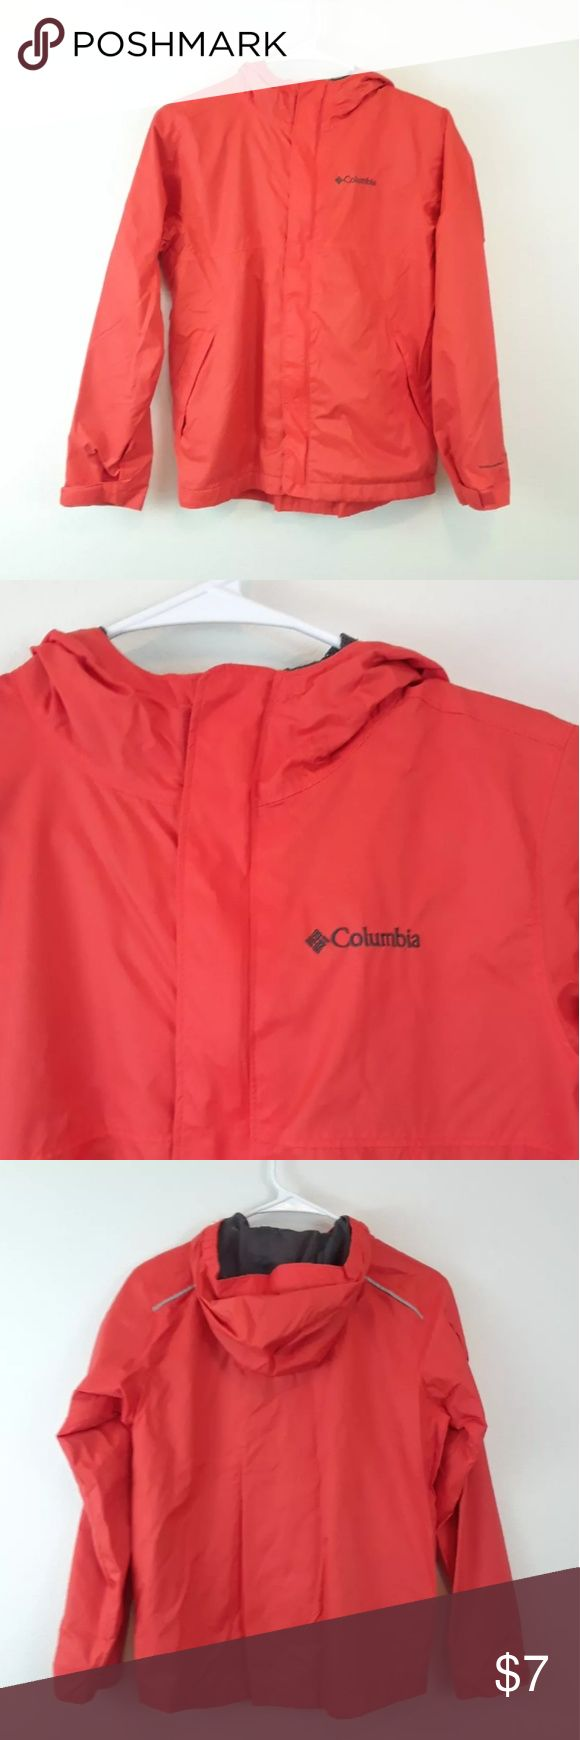 COLUMBIA BOYS M ORANGE HOODED WINDBREAKER JACKET Columbia Sportswear Company Jacket with Omni-Shield Size medium  Has pockets Zip-up closure with Velcro Reflective stripe on back 100% nylon 100% Polyester Mesh lining Columbia Jackets & Coats Raincoats